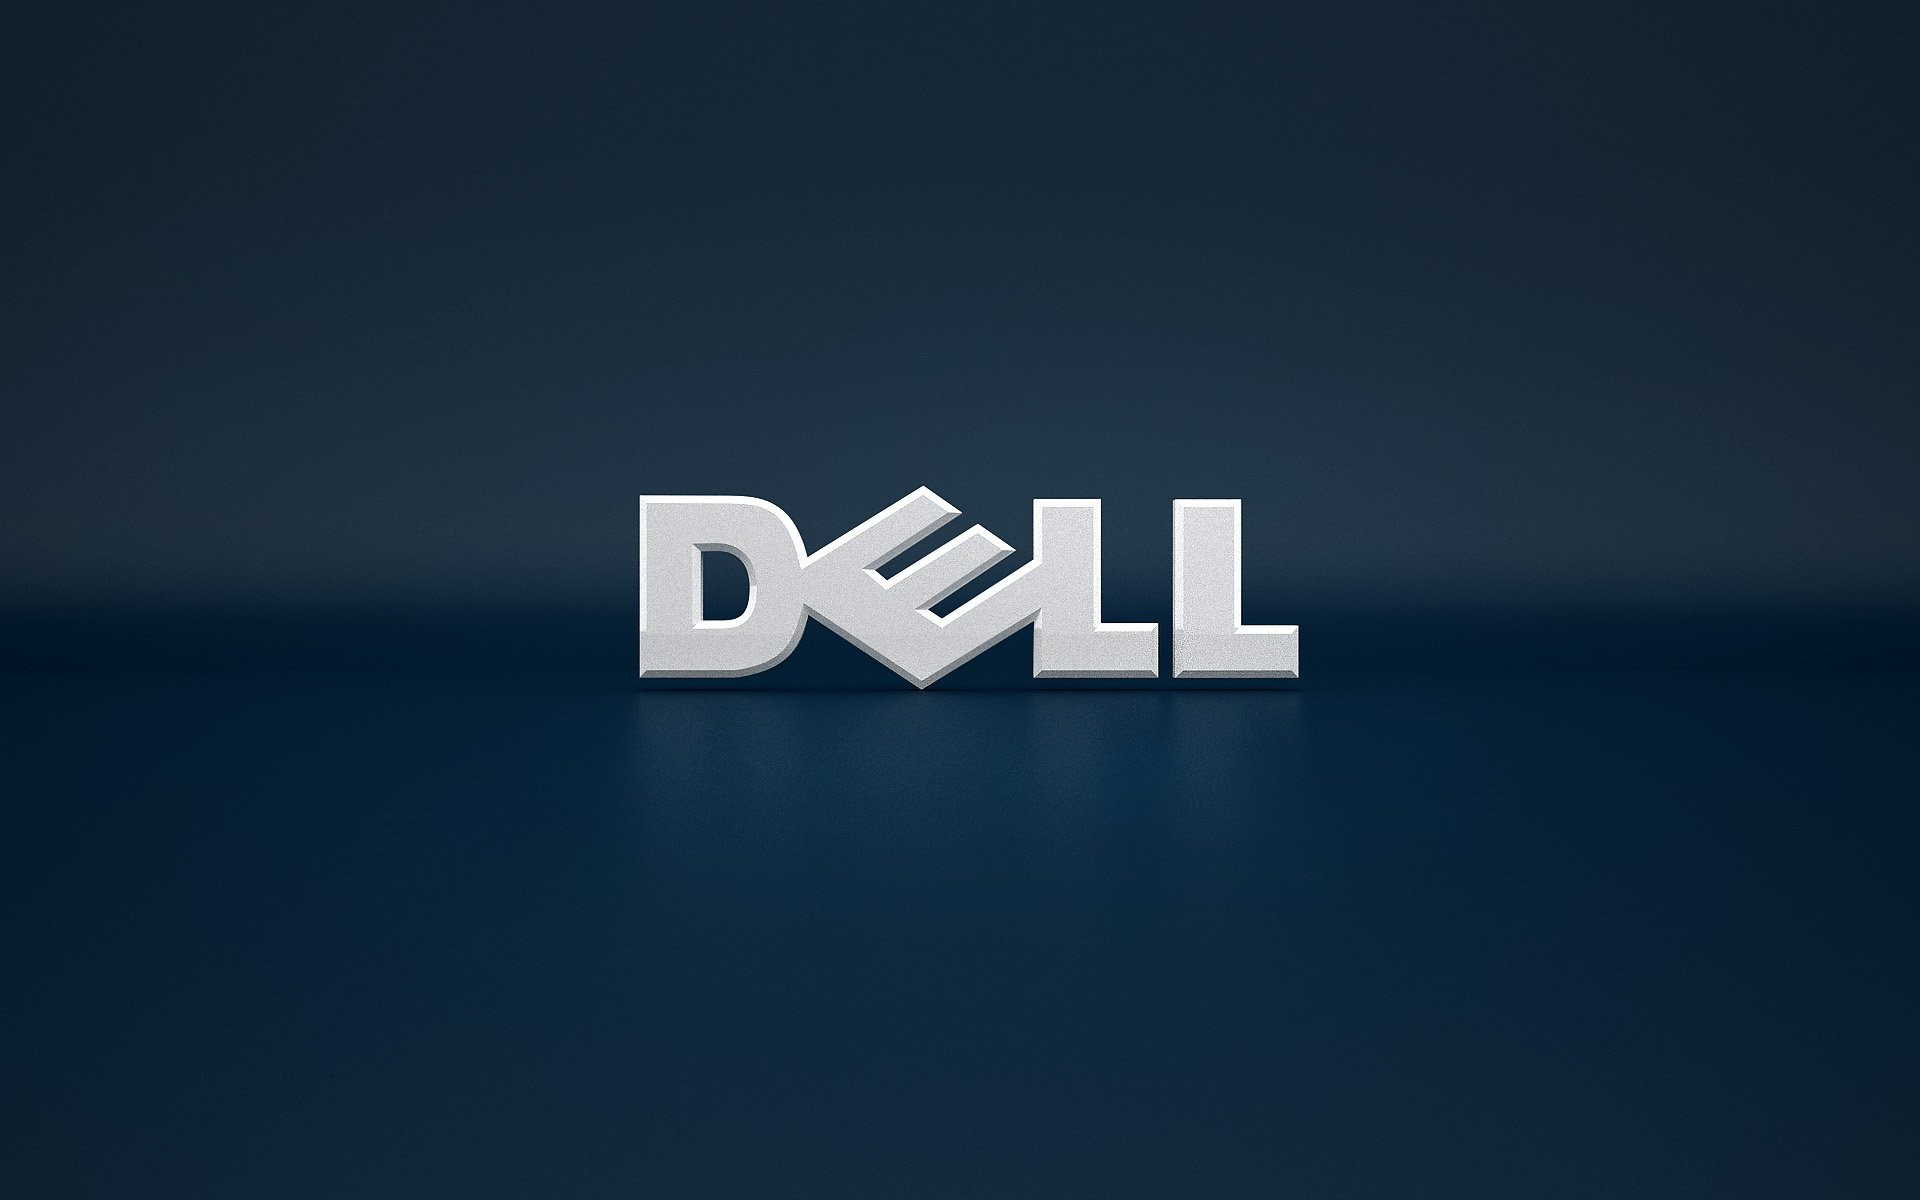 Dell Brand Widescreen Wallpapers